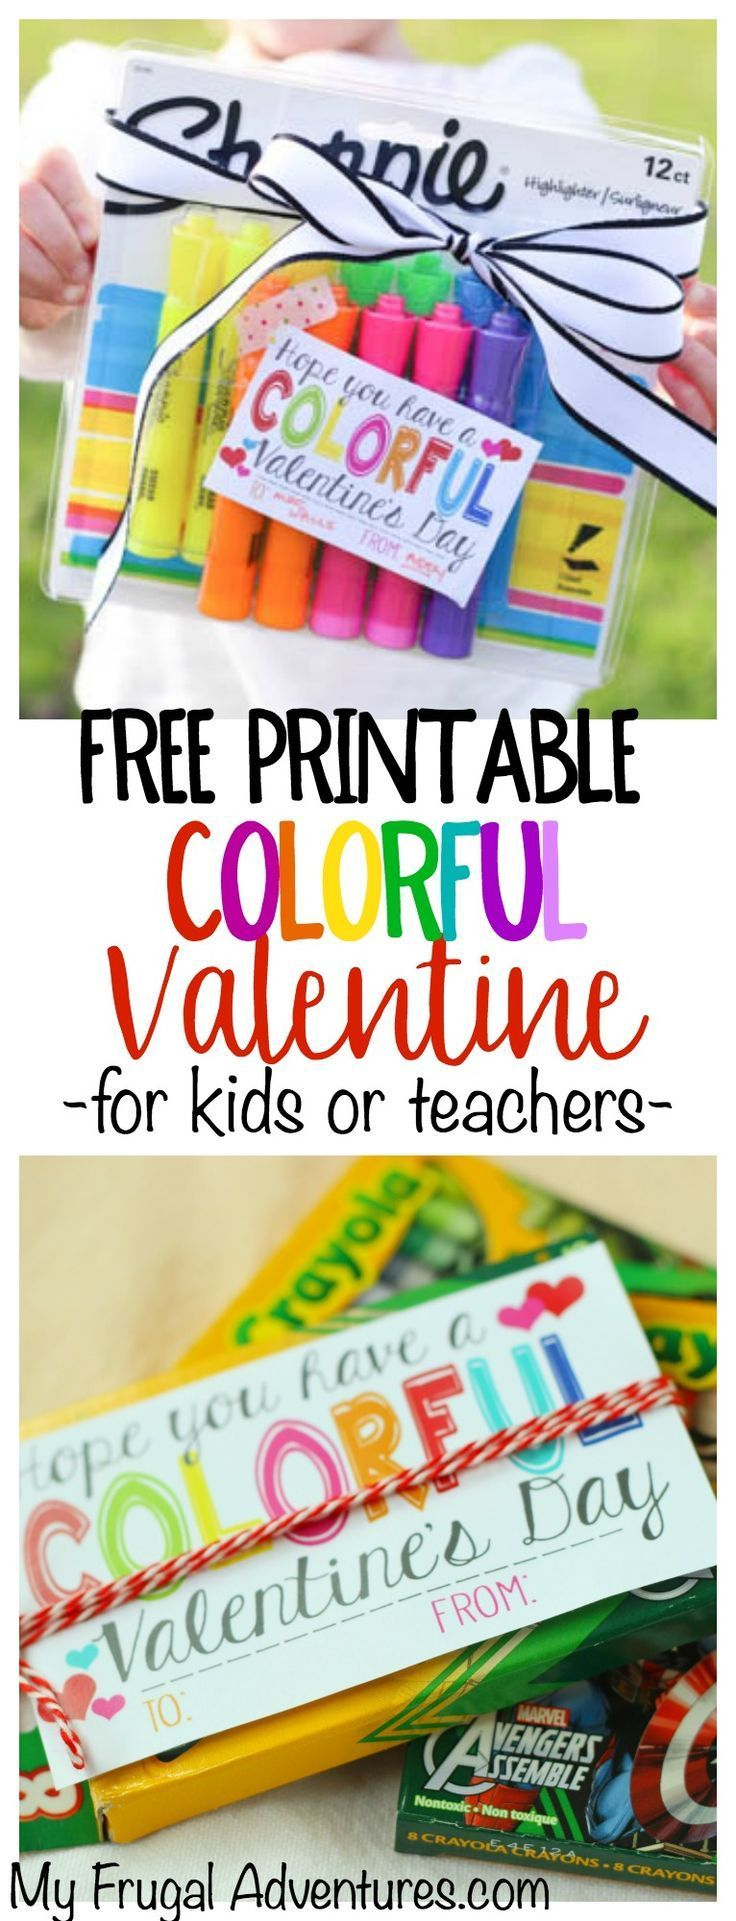 """Free Printable """"Colorful"""" Valentine.  Add to crayons, watercolors, bright candies... Perfect for teacher gifts or for kids. Great non candy Valentine option."""